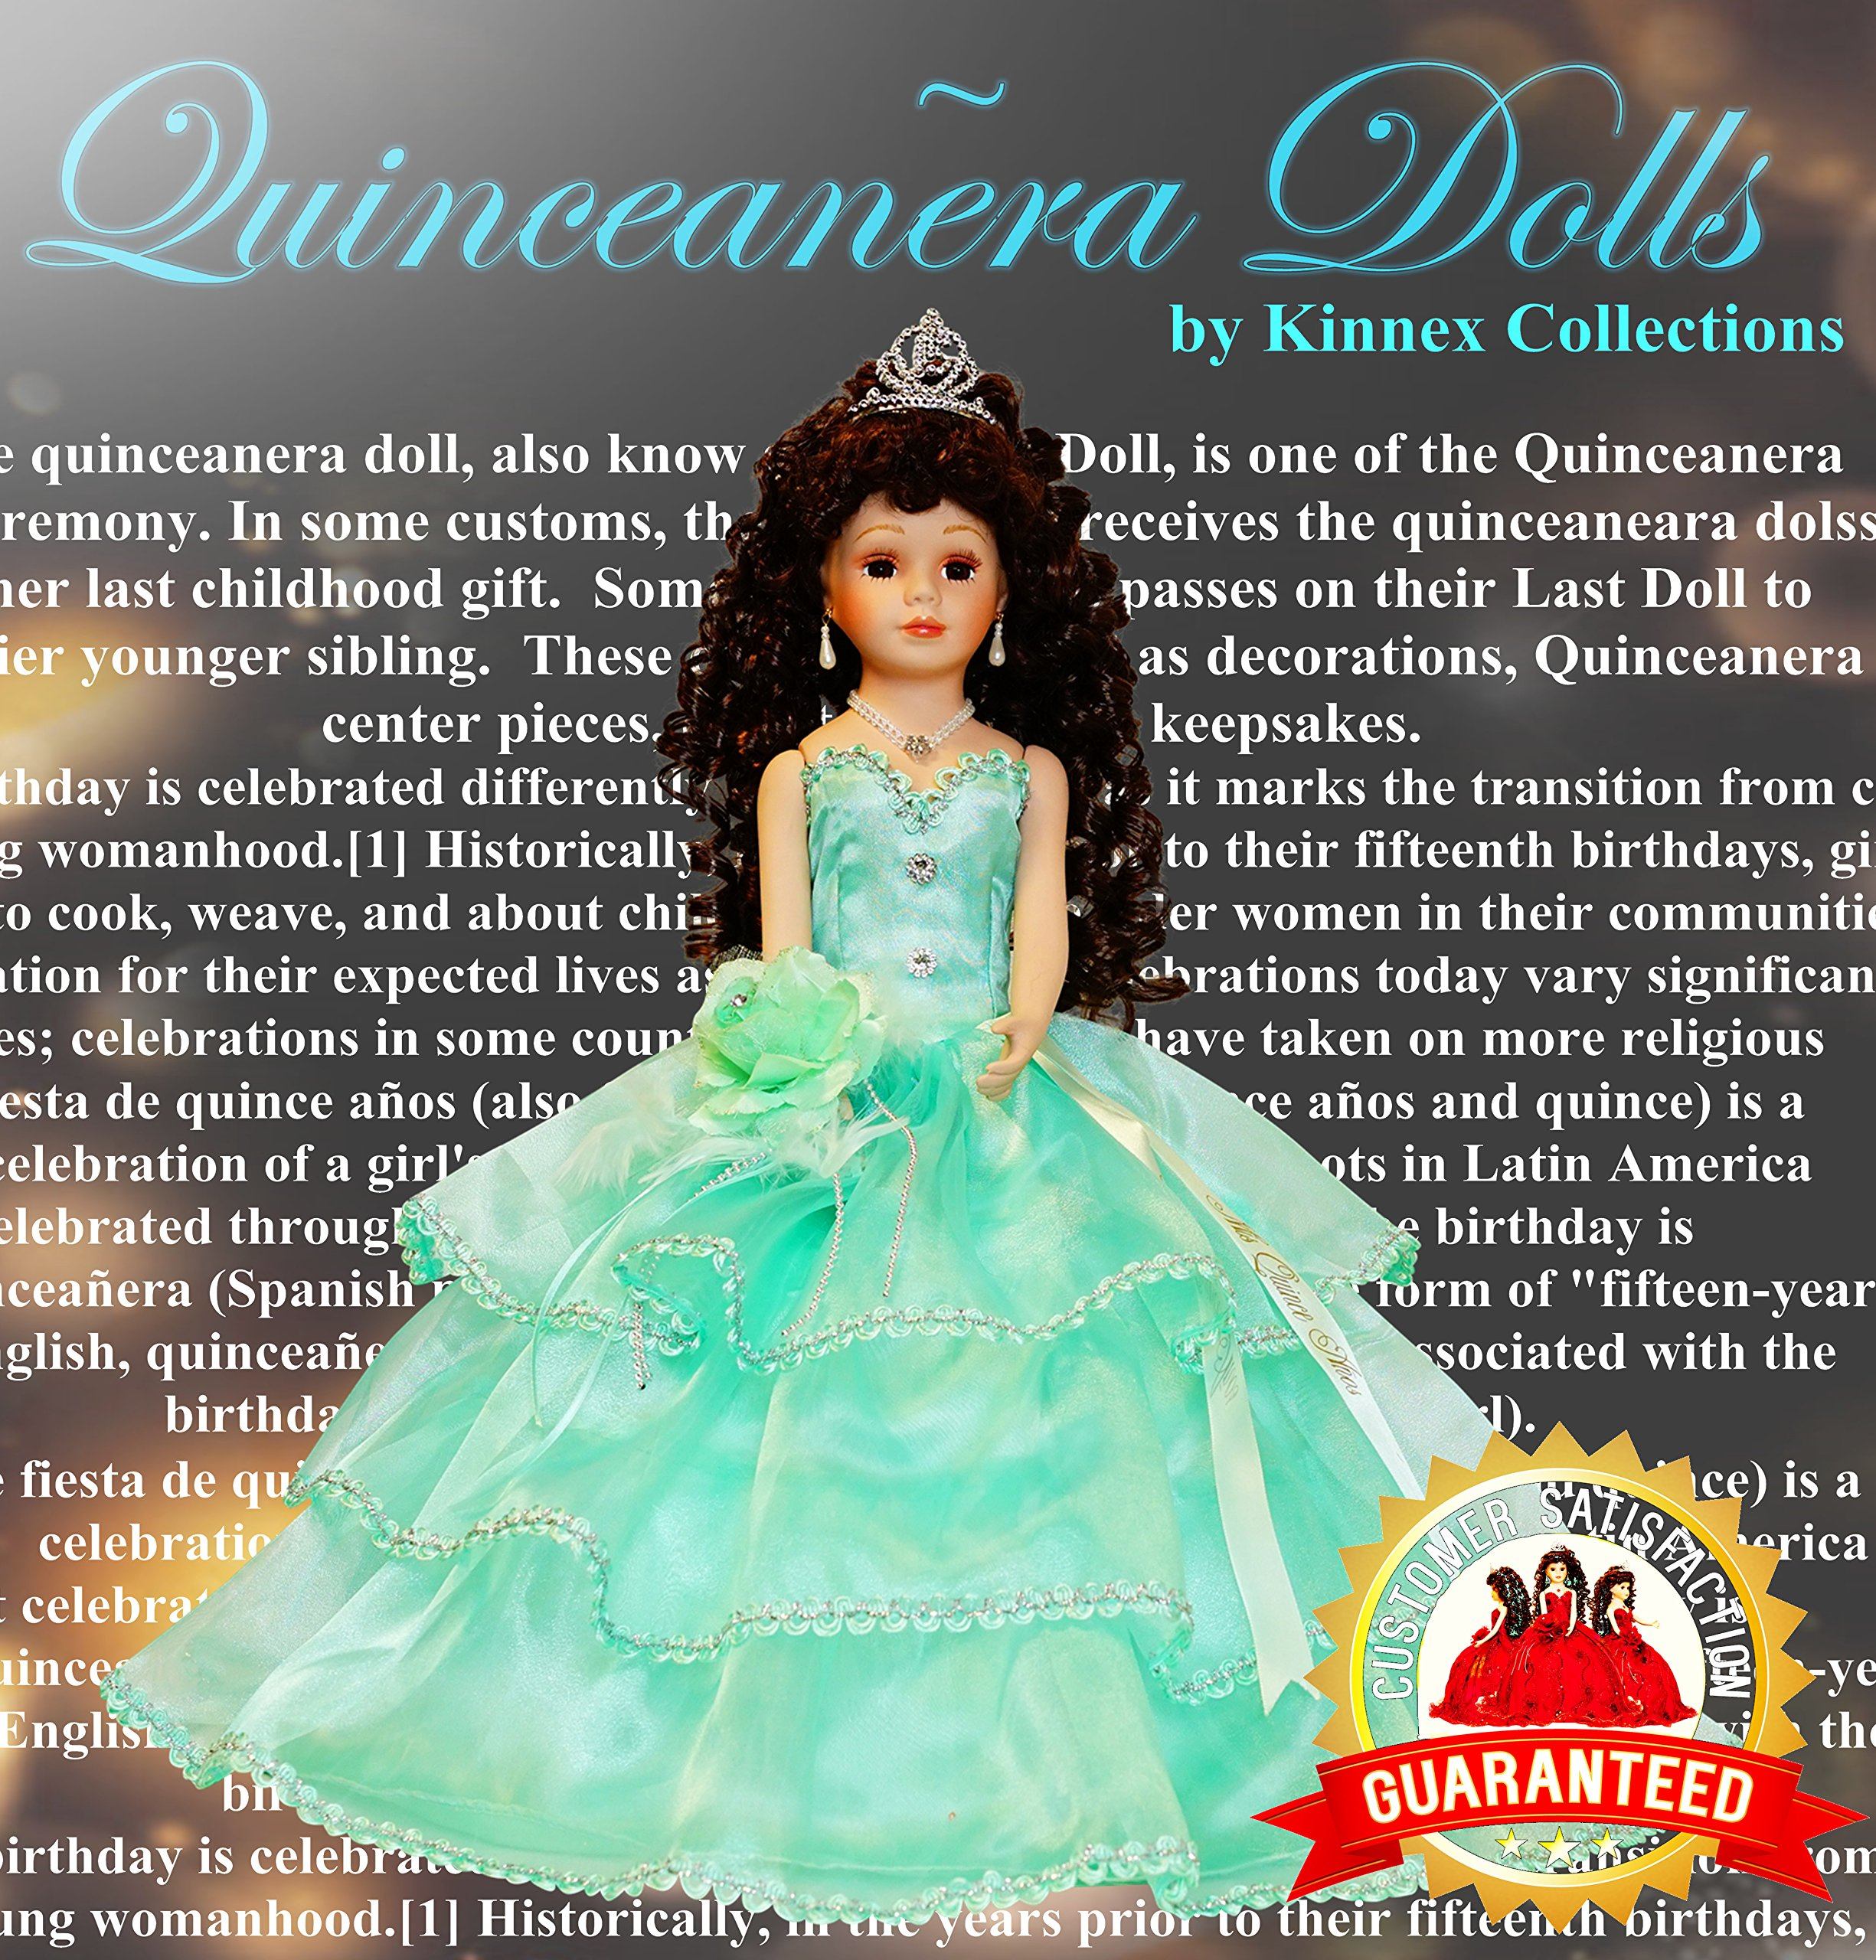 18'' Porcelain Quinceanera Umbrella Doll (Table Centerpiece)~Mint~ KB18724-25B by Kinnex Collections by Amanda